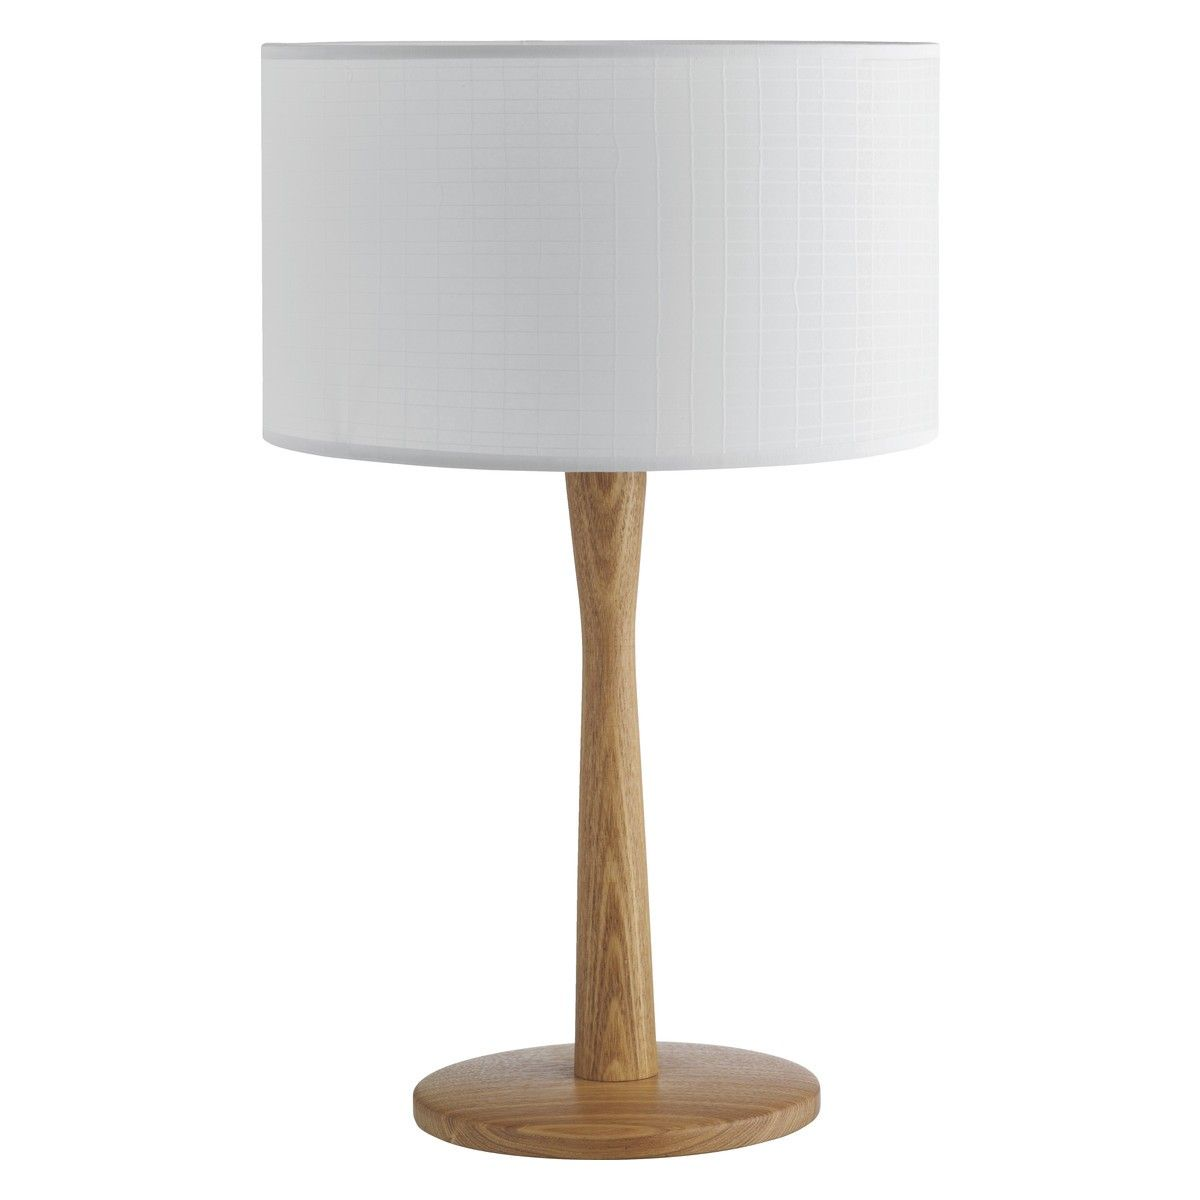 Pip ash wooden table lamp base chandeliers lampshades lanterns pip ash wooden table lamp base geotapseo Choice Image